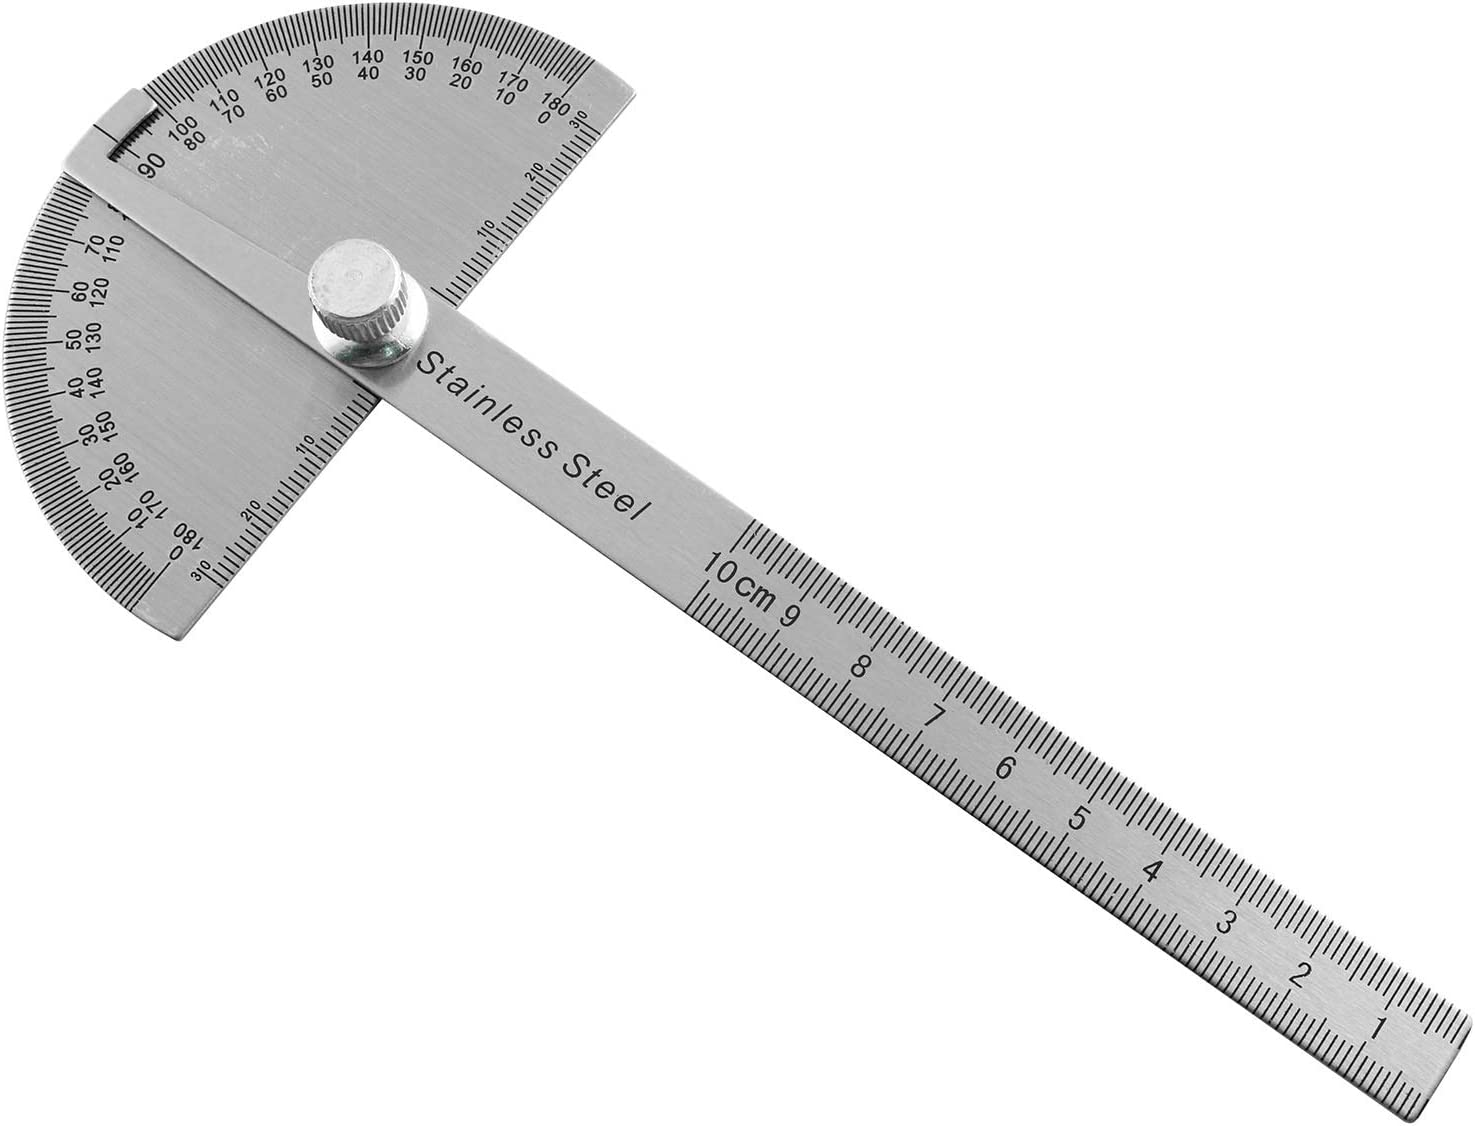 Protractor 1pc Stainless Steel 0 to 180 Degrees Arm Ruler Angle Measuring Tool